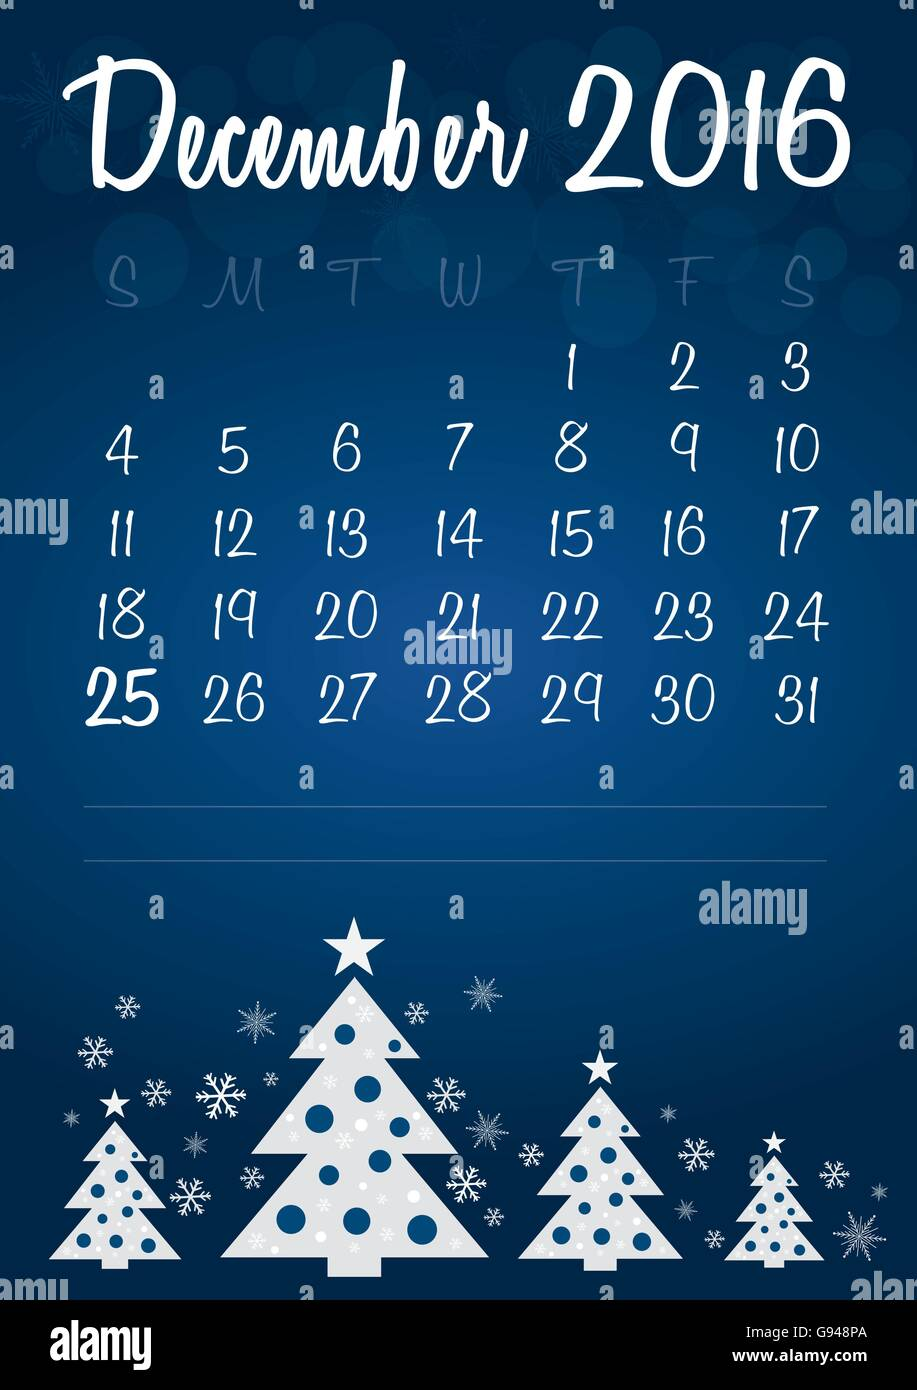 Christmas Calendar 2016 : December christmas calendar stock vector art